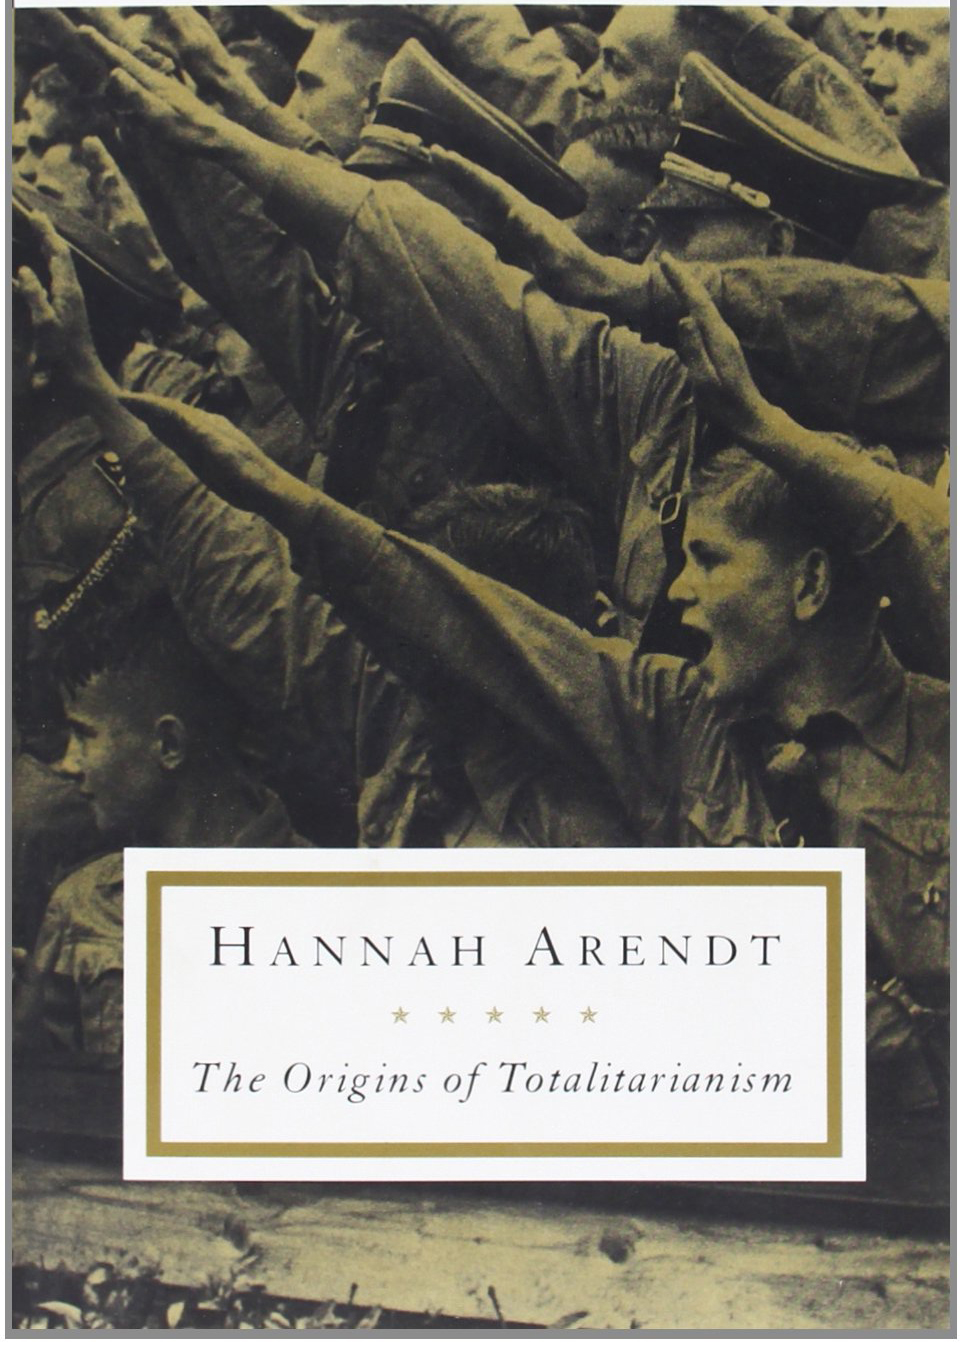 Arendt, Hannah - The Origins of Totalitarianism.jpg